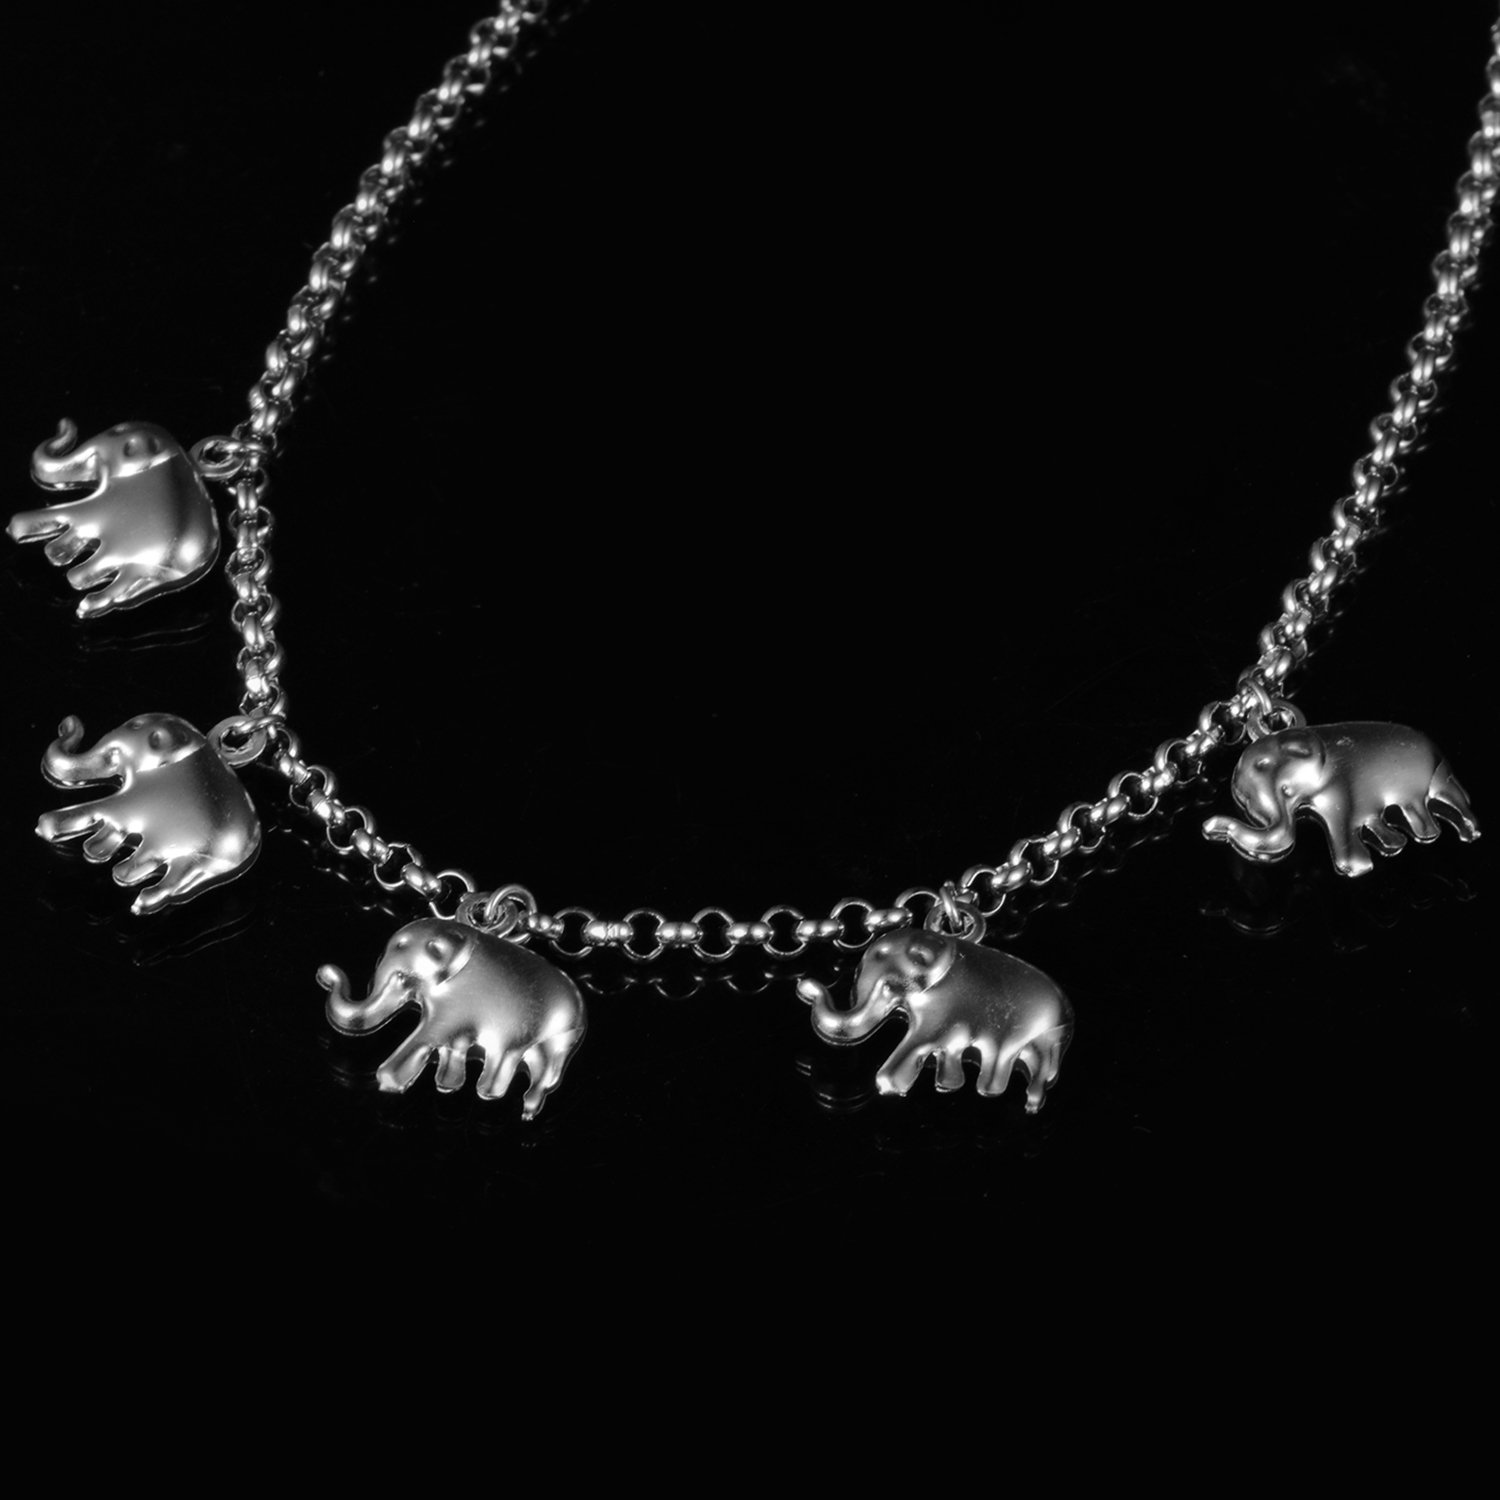 New Stainless Steel Elephant Jewelry Choker NecklaceTrendy Lucky Charm Chain Gifts N50156